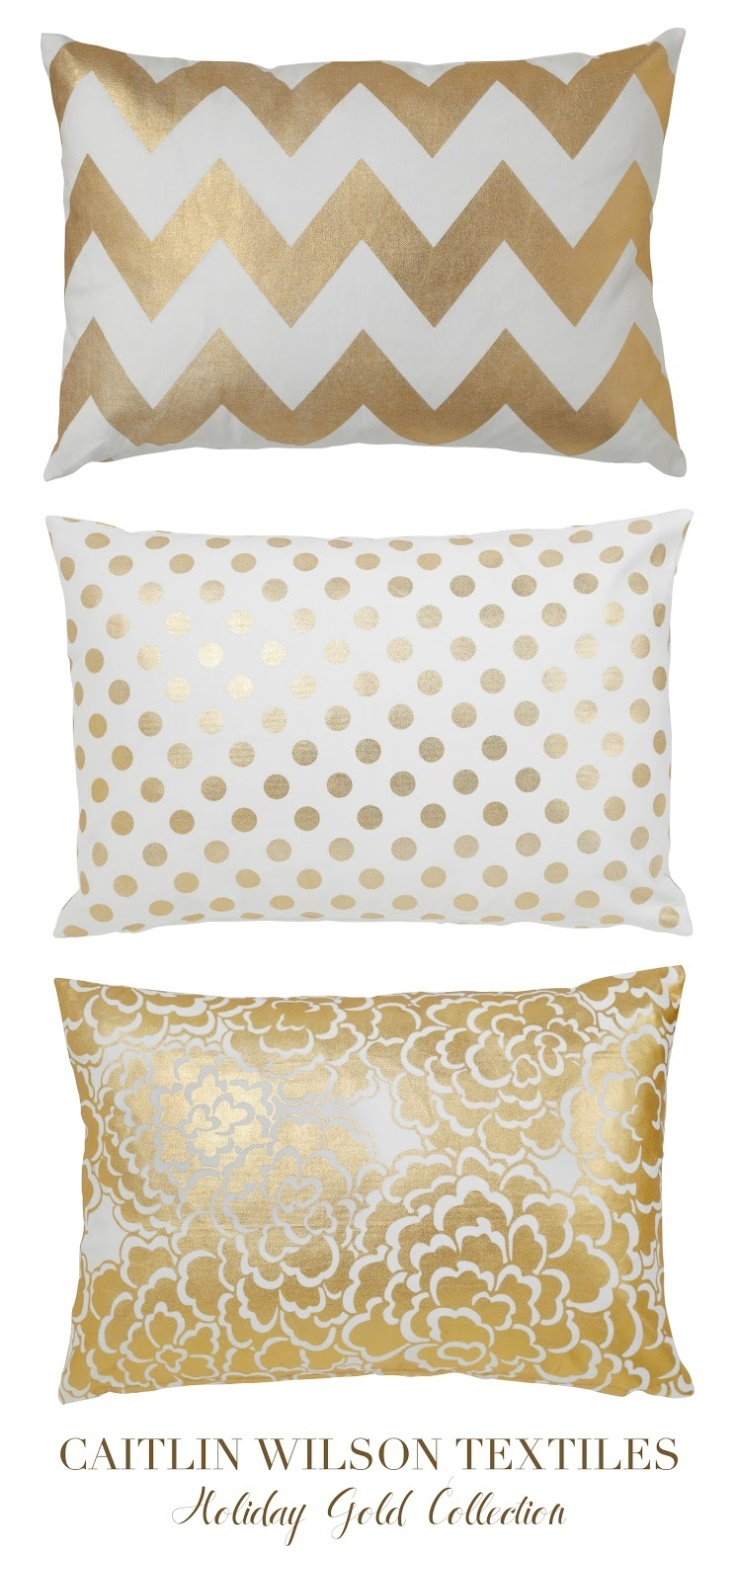 Caitlin Wilson Design Captivating With Gold Accent Pillows Picture